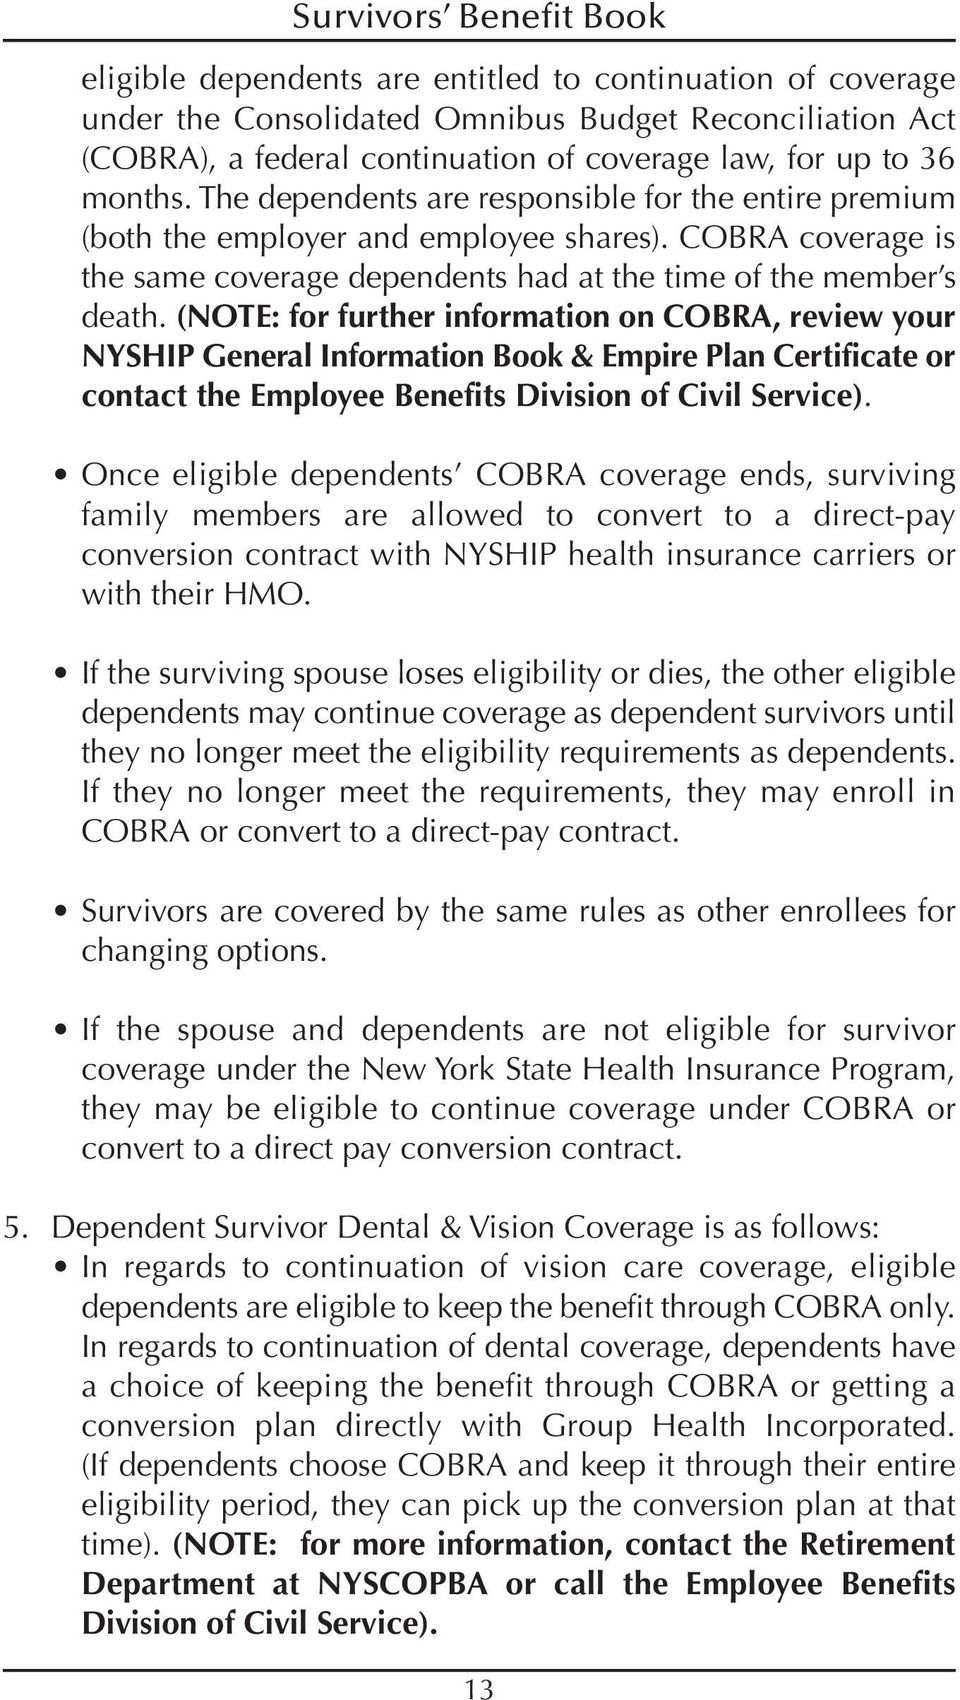 (NOTE: for further information on COBRA, review your NYSHIP General Information Book & Empire Plan Certificate or contact the Employee Benefits Division of Civil Service).